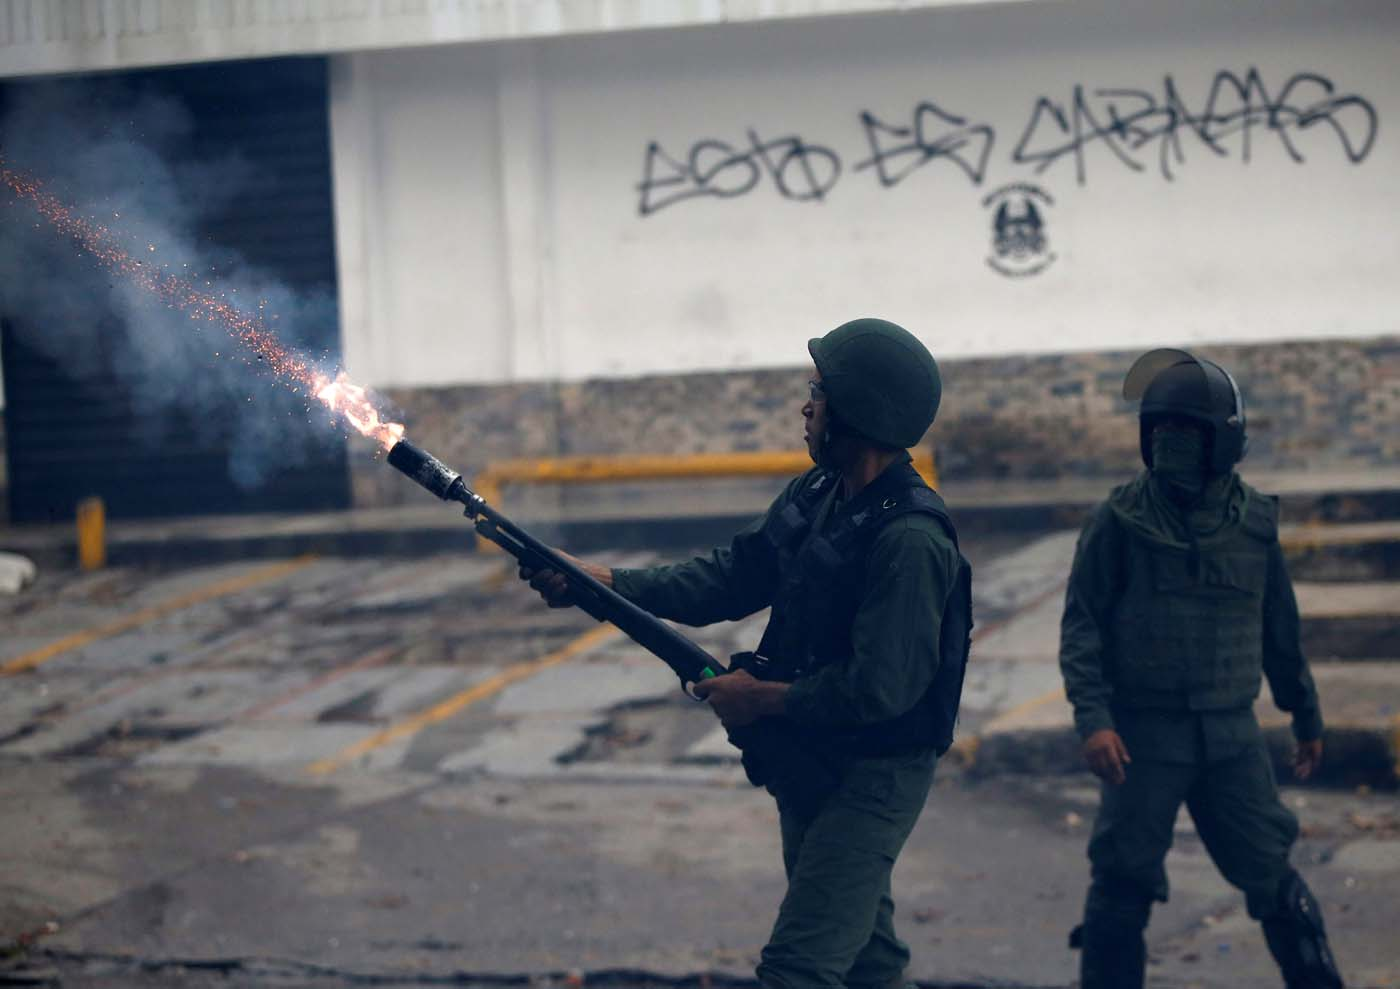 A riot security forces member fires a tear gas grenade while clashing with demonstrators rallying against Venezuela's President Nicolas Maduro's government in Caracas, Venezuela, July 28, 2017.  REUTERS/Andres Martinez Casares